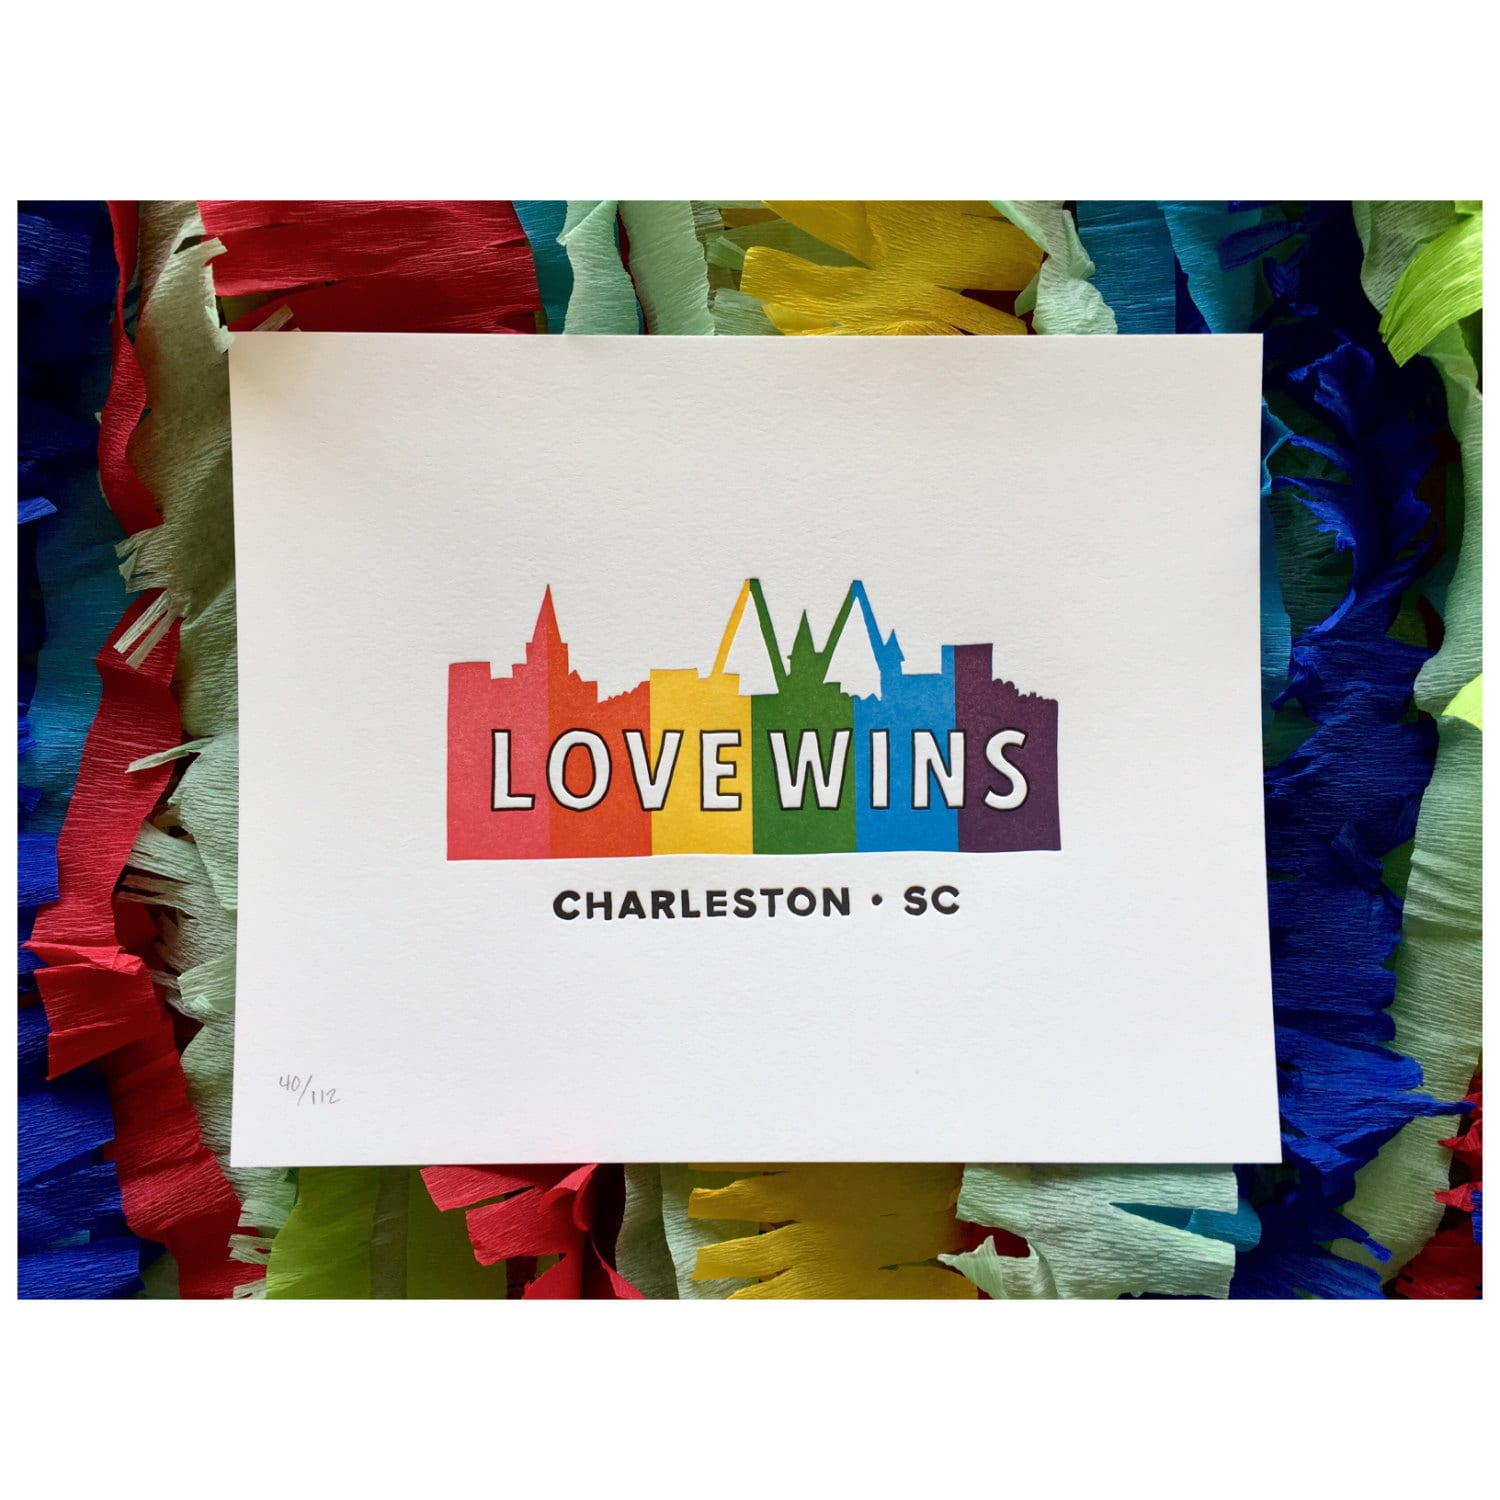 four of four colors to create the Love Wins Charleston letterpress print